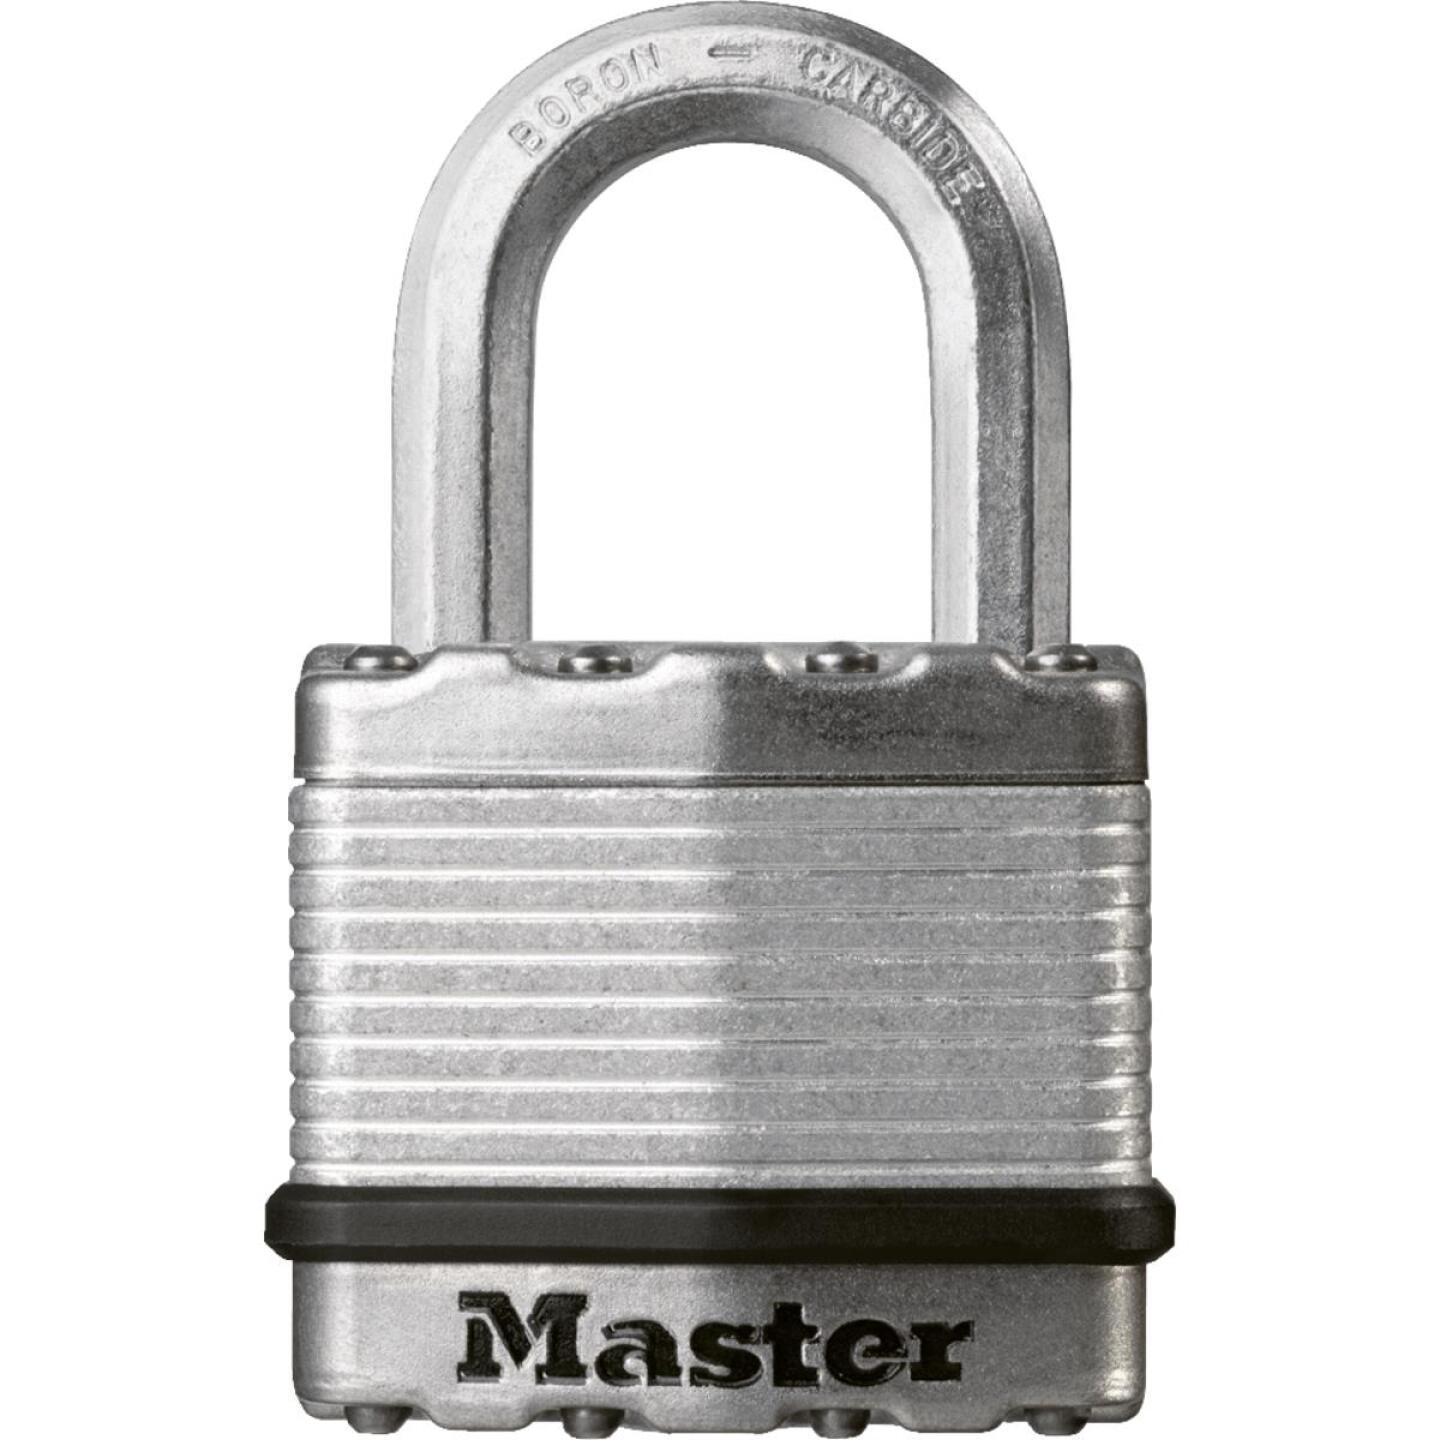 Master Lock Magnum 1-3/4 In. W. Dual-Armor Keyed Different Padlock with 1 In. L. Shackle Image 1